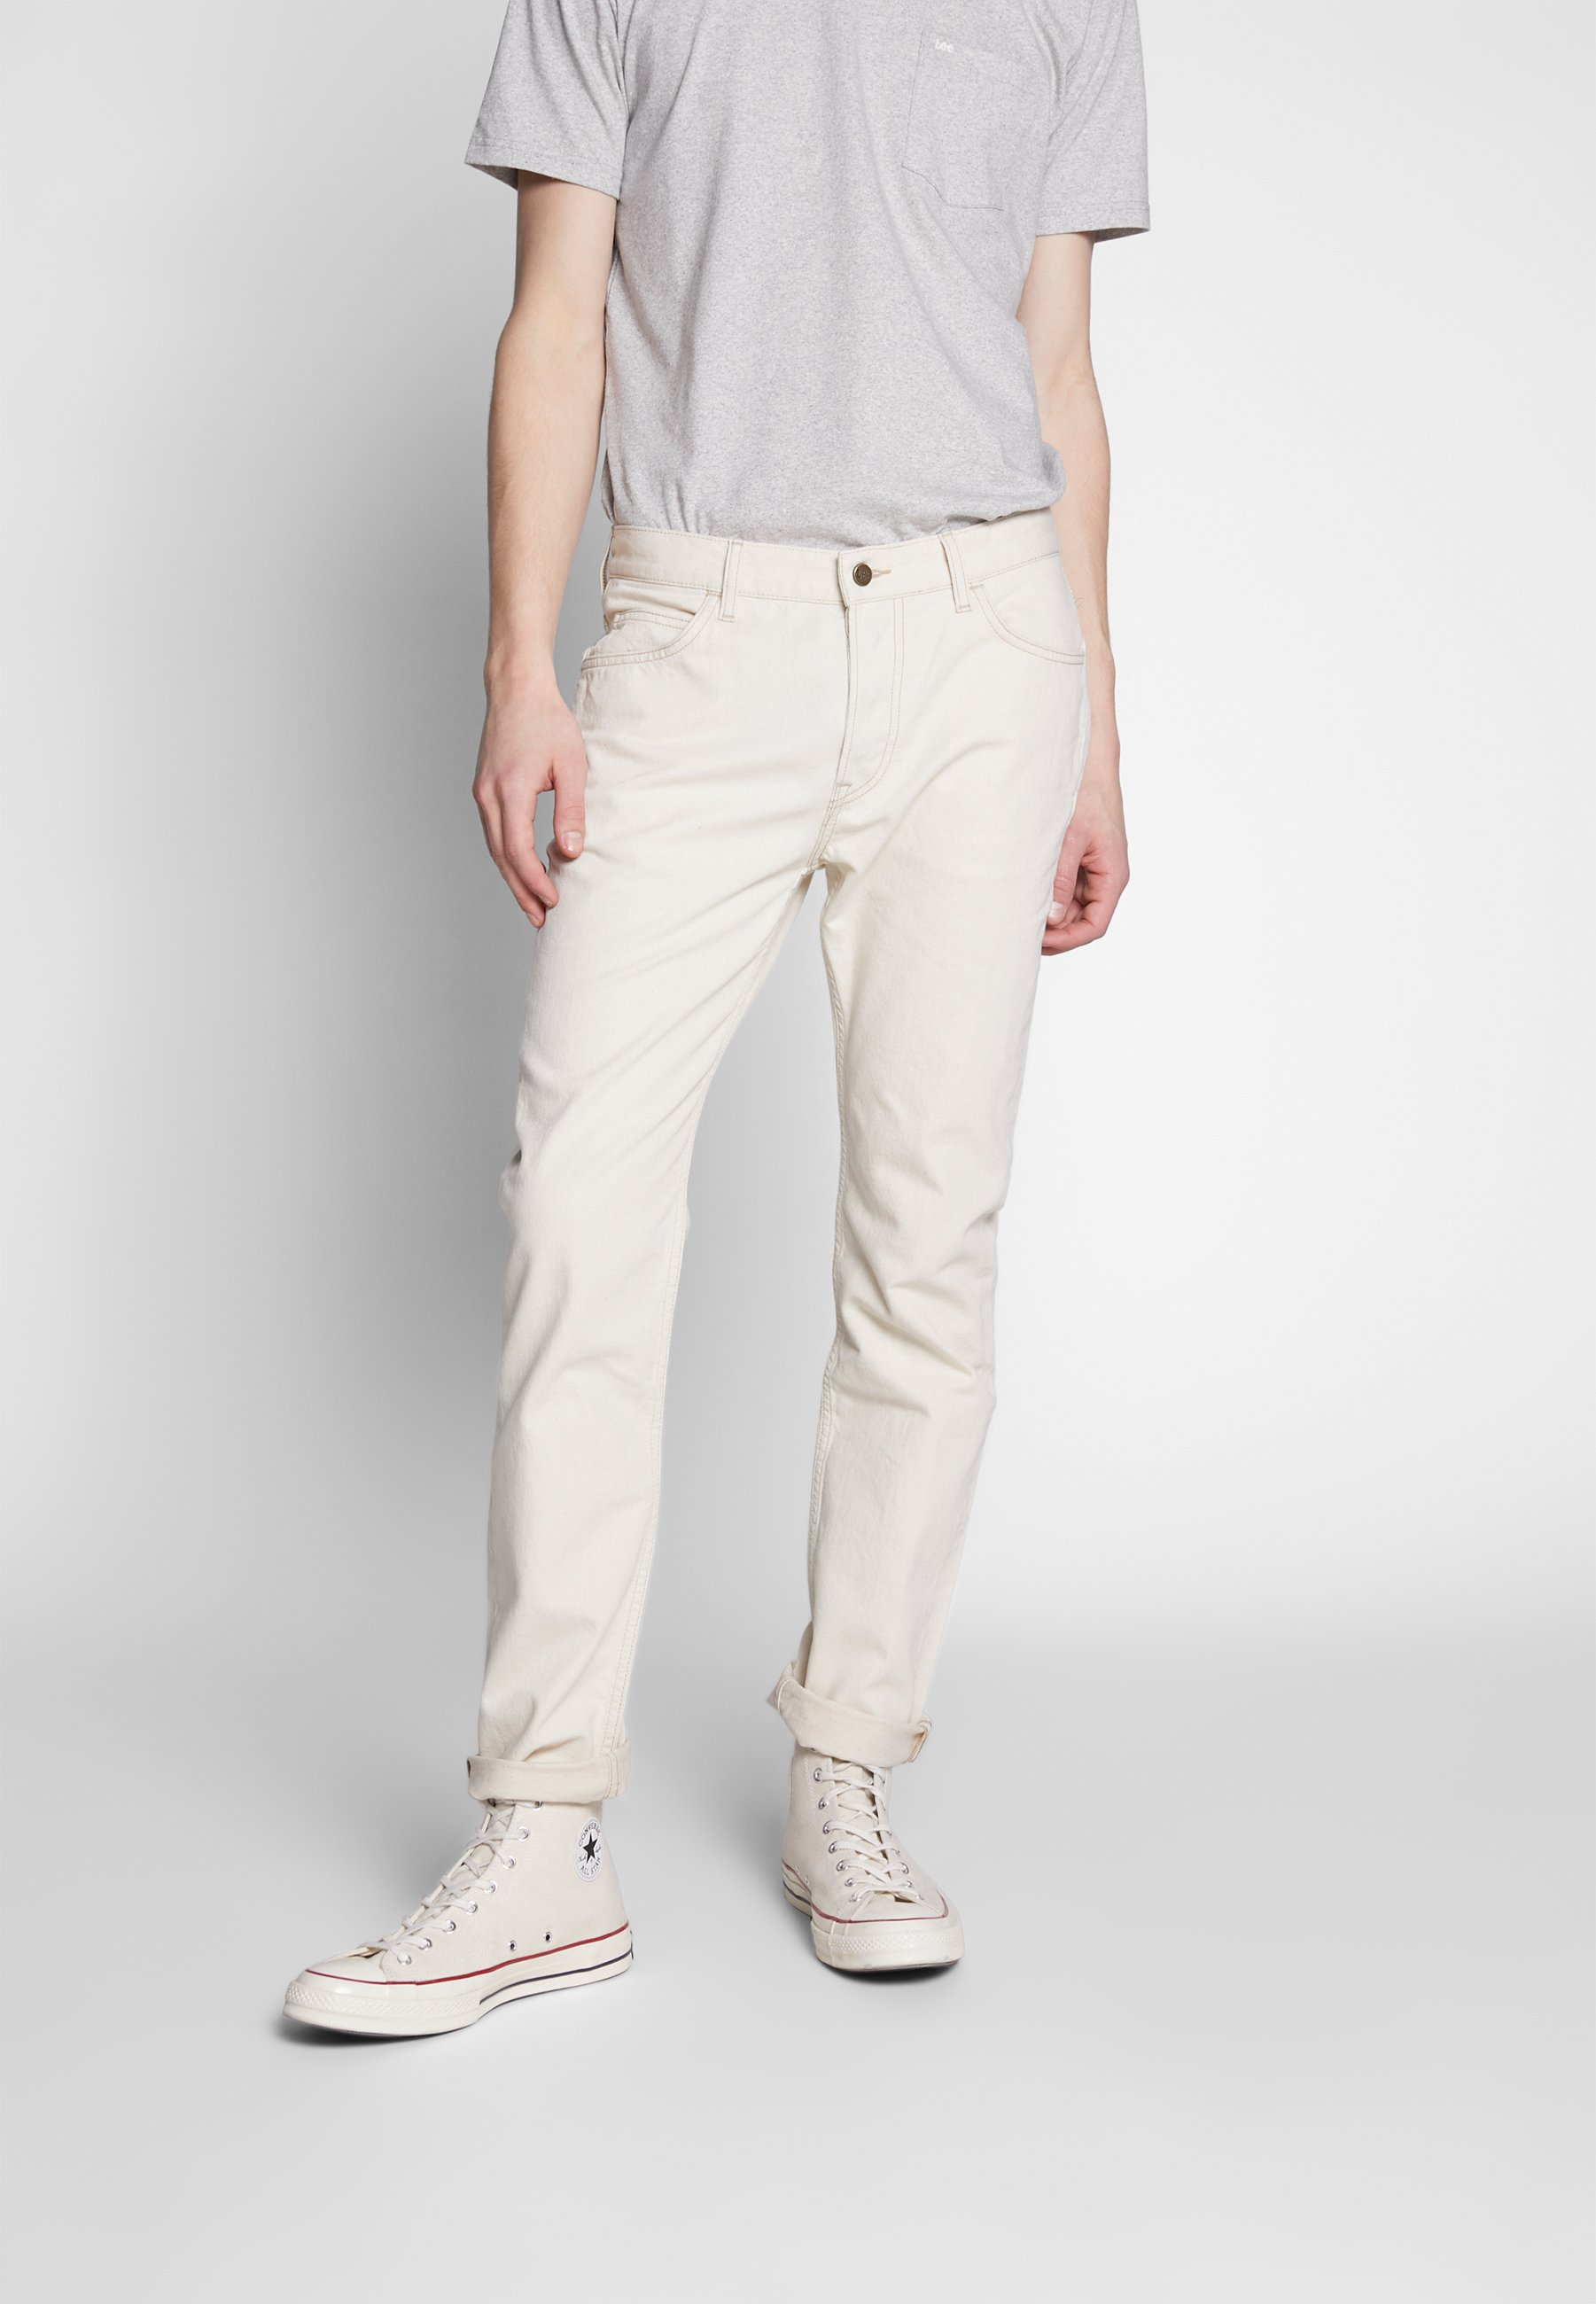 Lee RIDER BUTTON FLY - Jeansy Slim Fit - white denim off-white